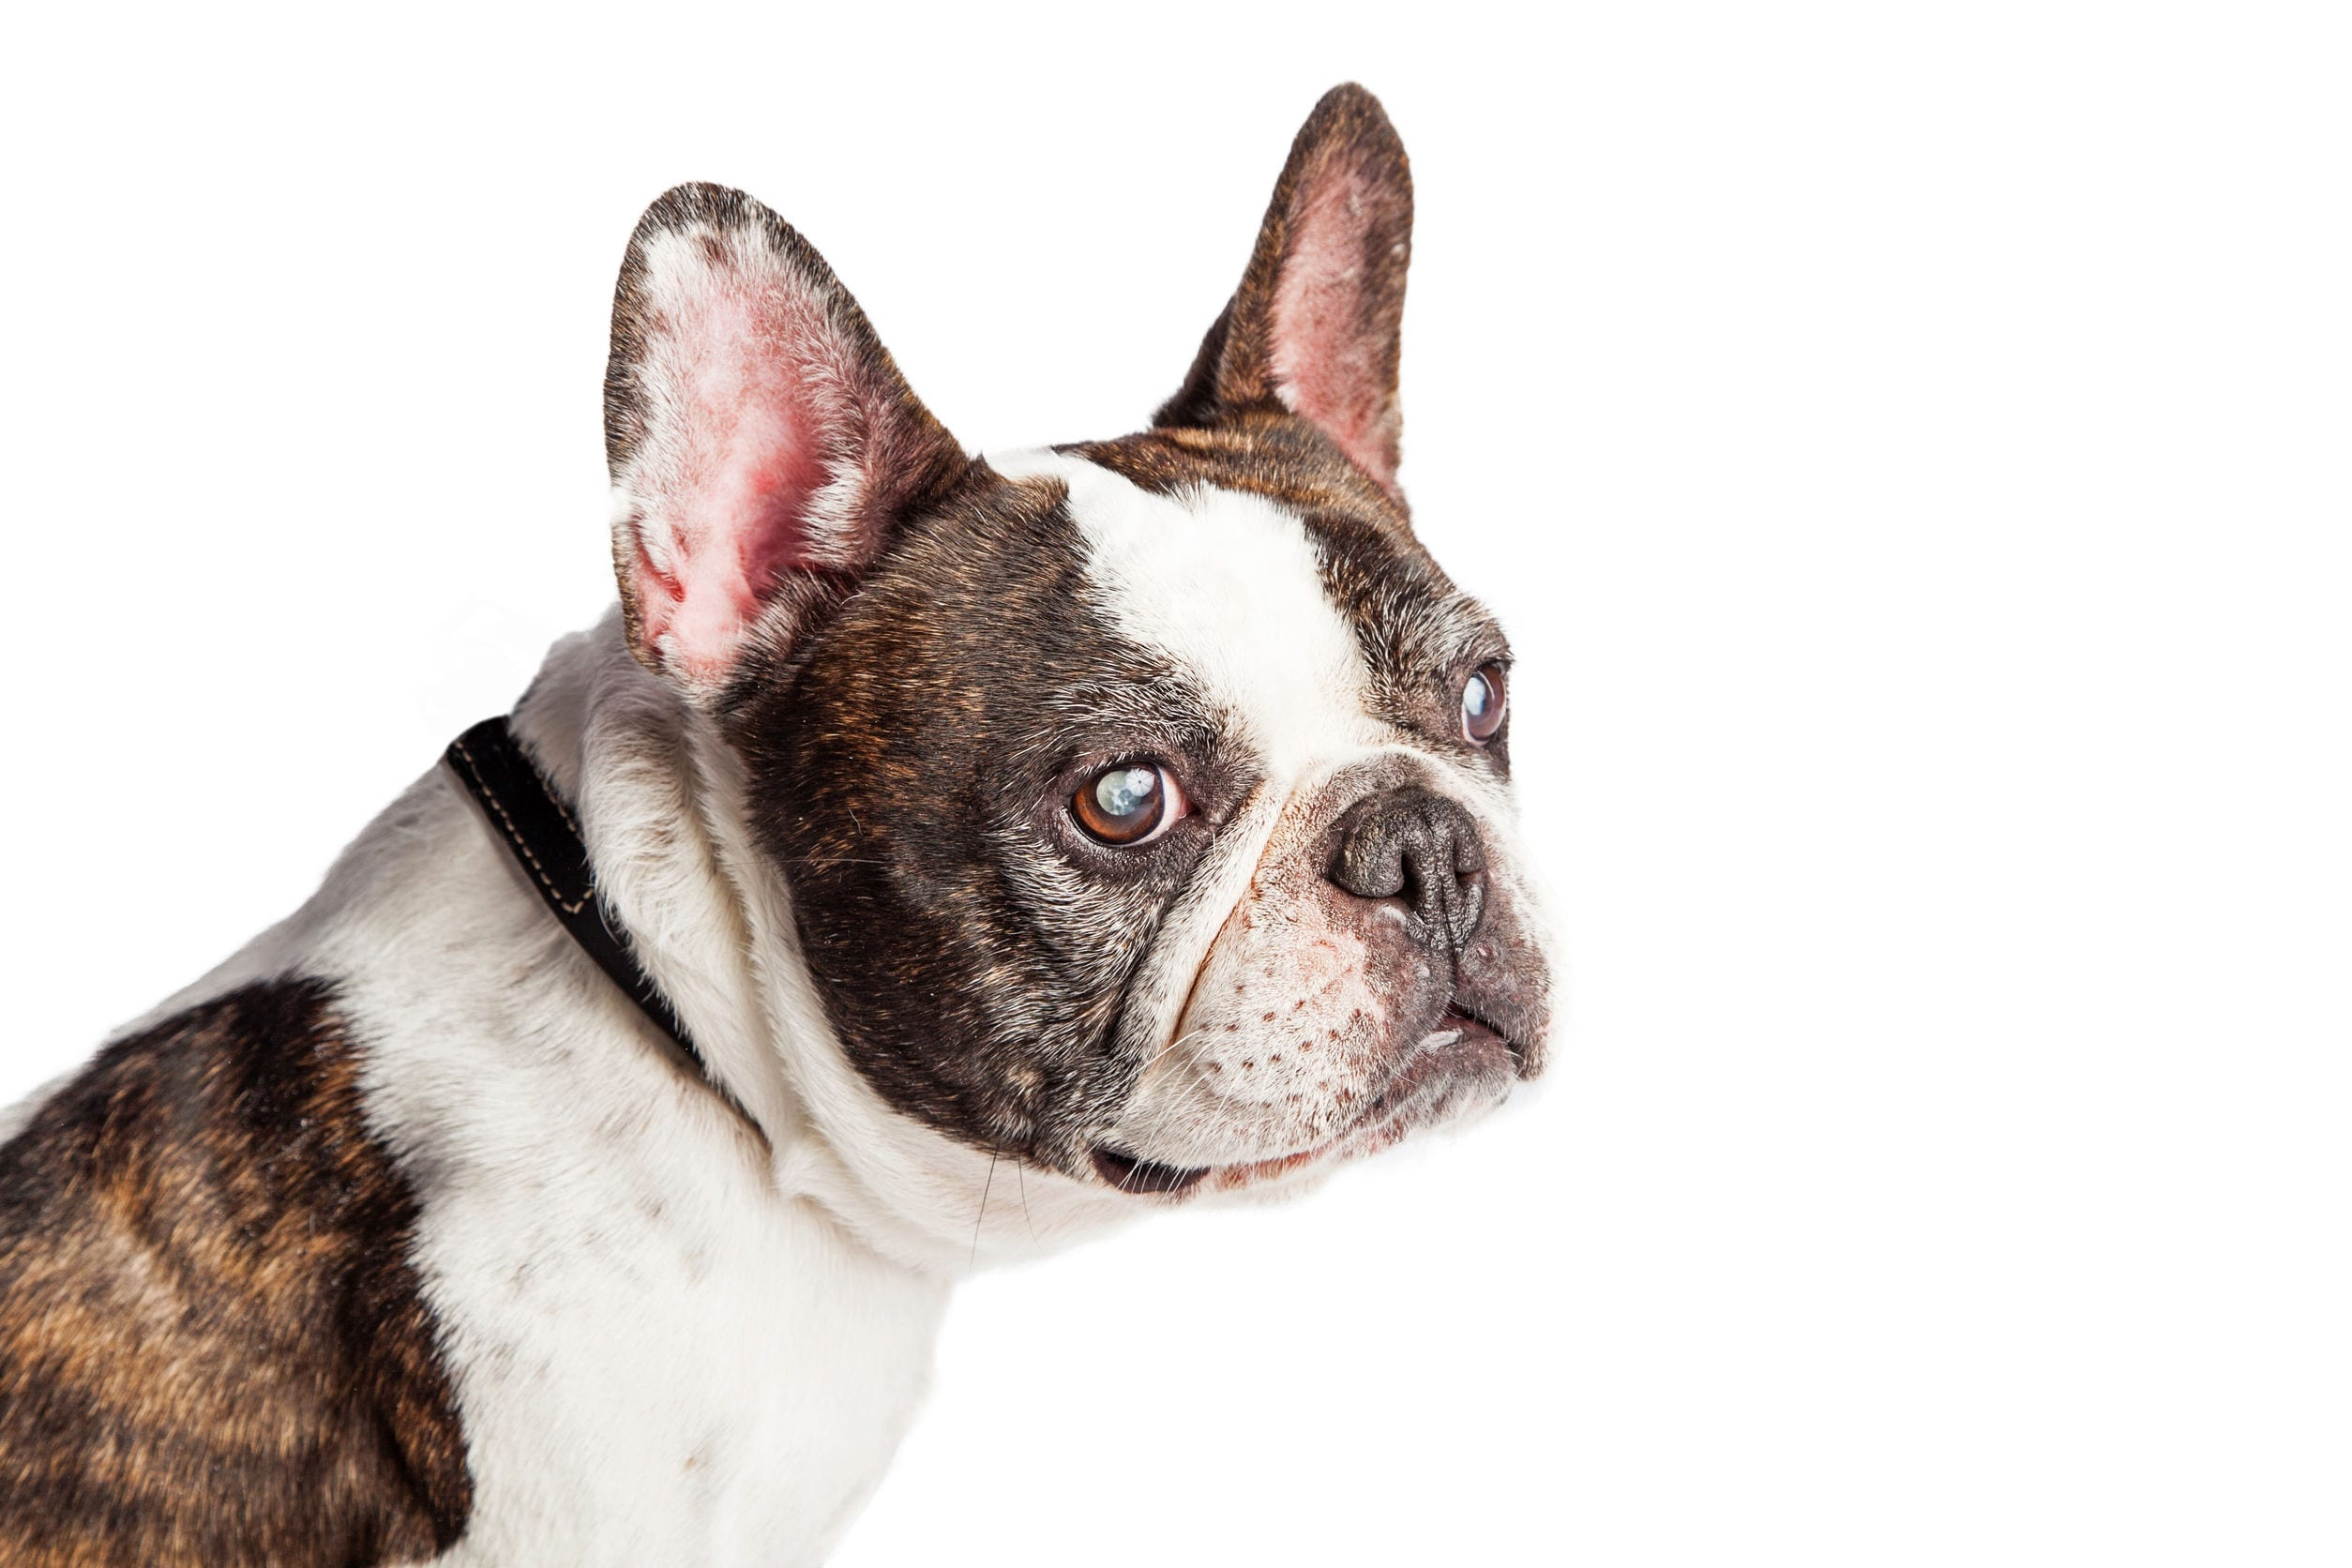 Canine Cataract Surgery: What You Need To Know